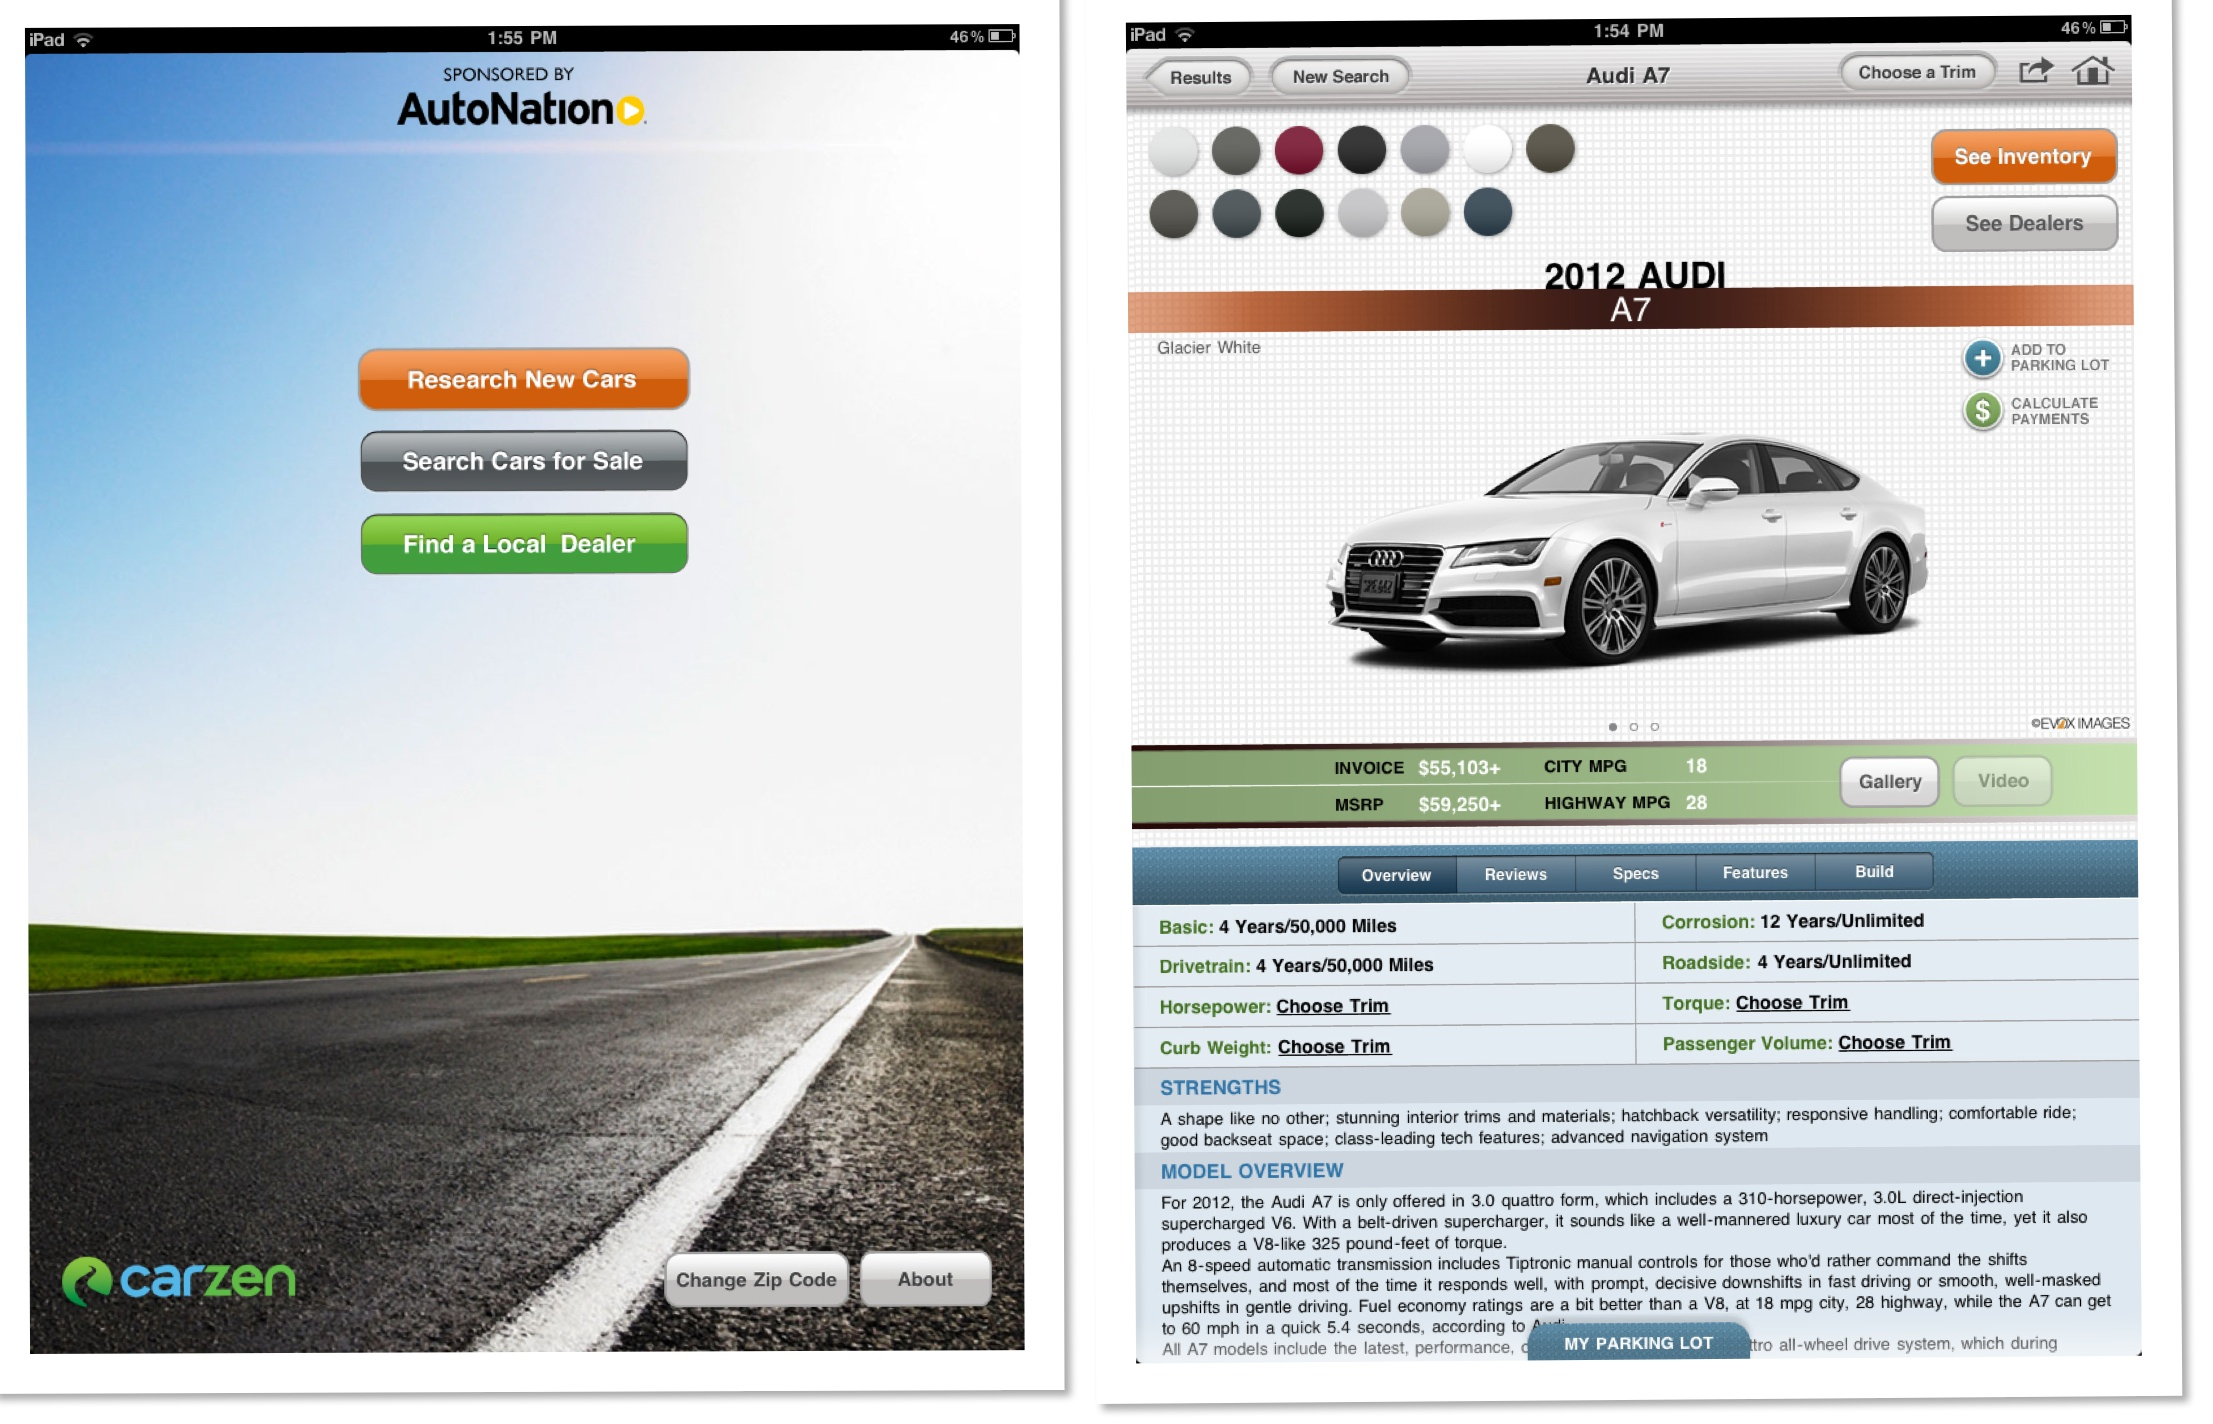 Car Shopping App >> Dealerrater Joins Forces With 1 Ipad Car Shopping App